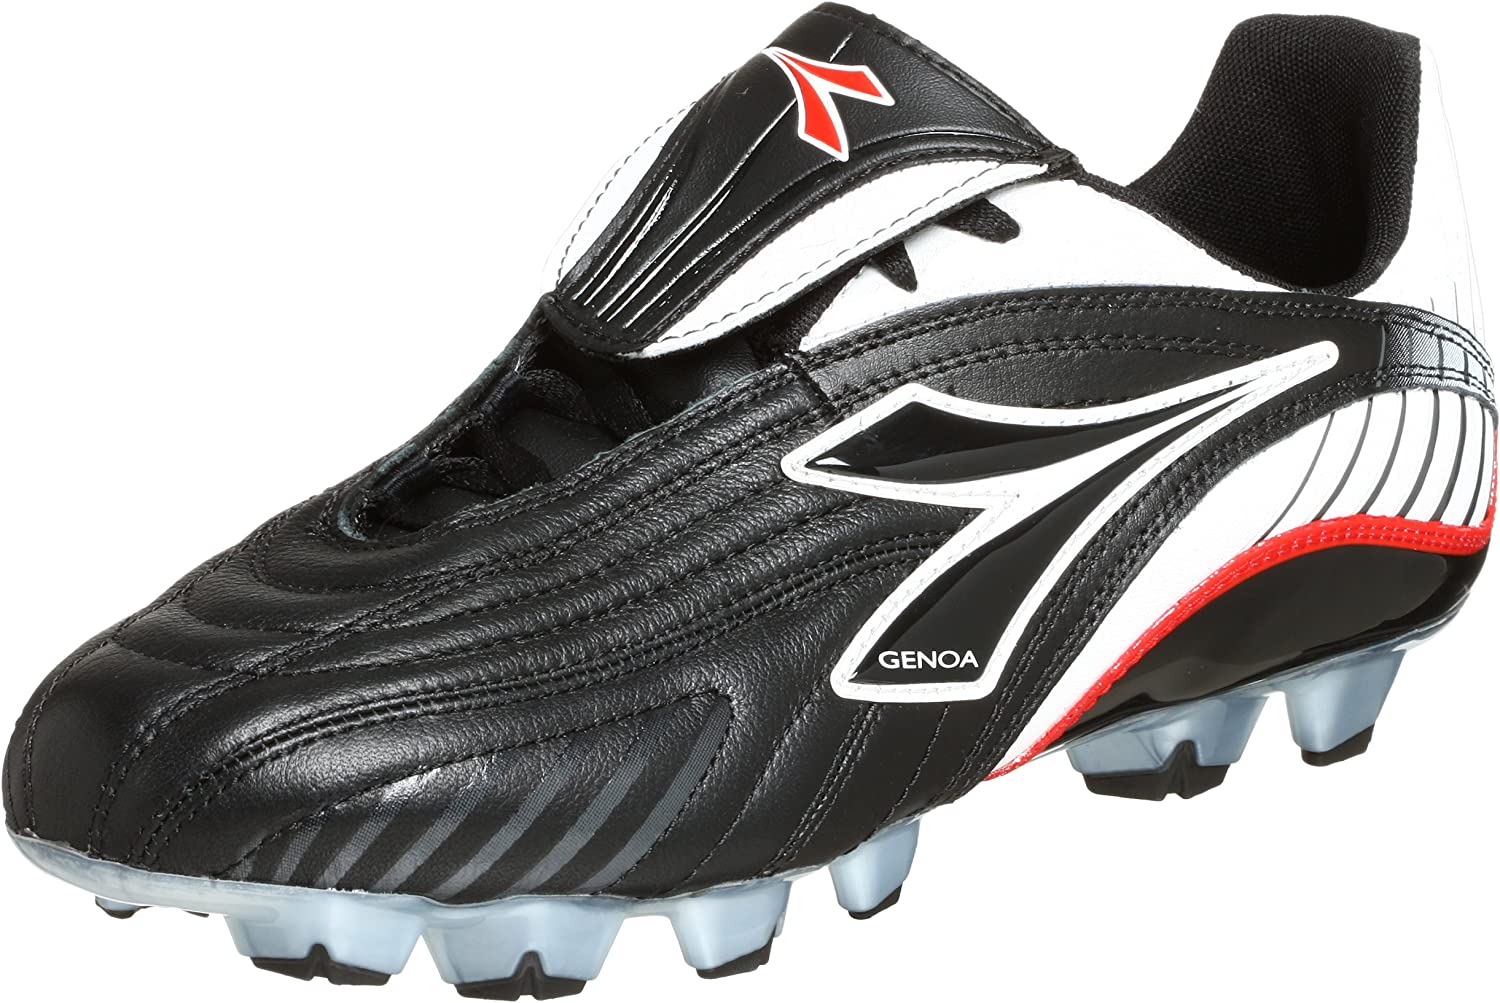 Diadora Men's Genoa RTX Soccer Cleat